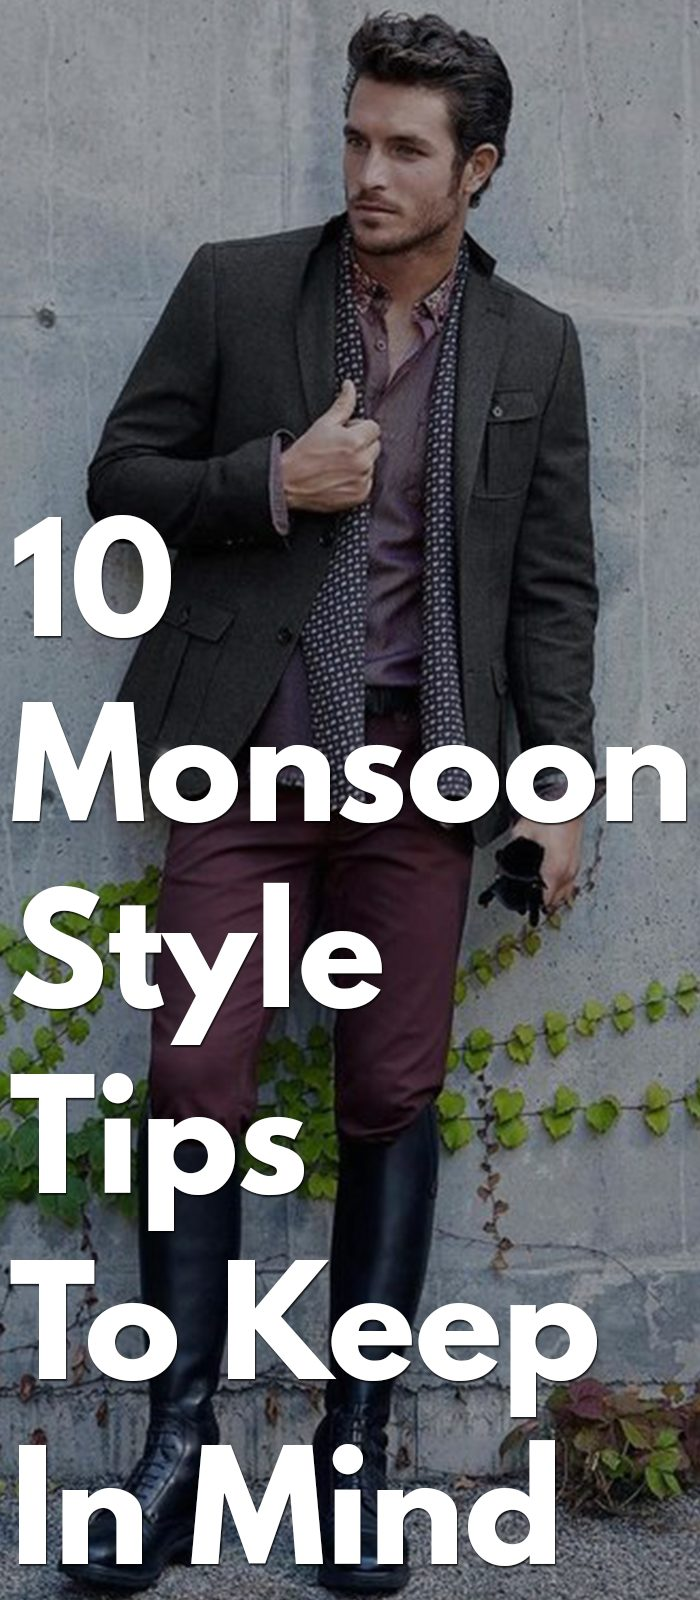 10 Monsoon Style Tips To Keep In Mind this season